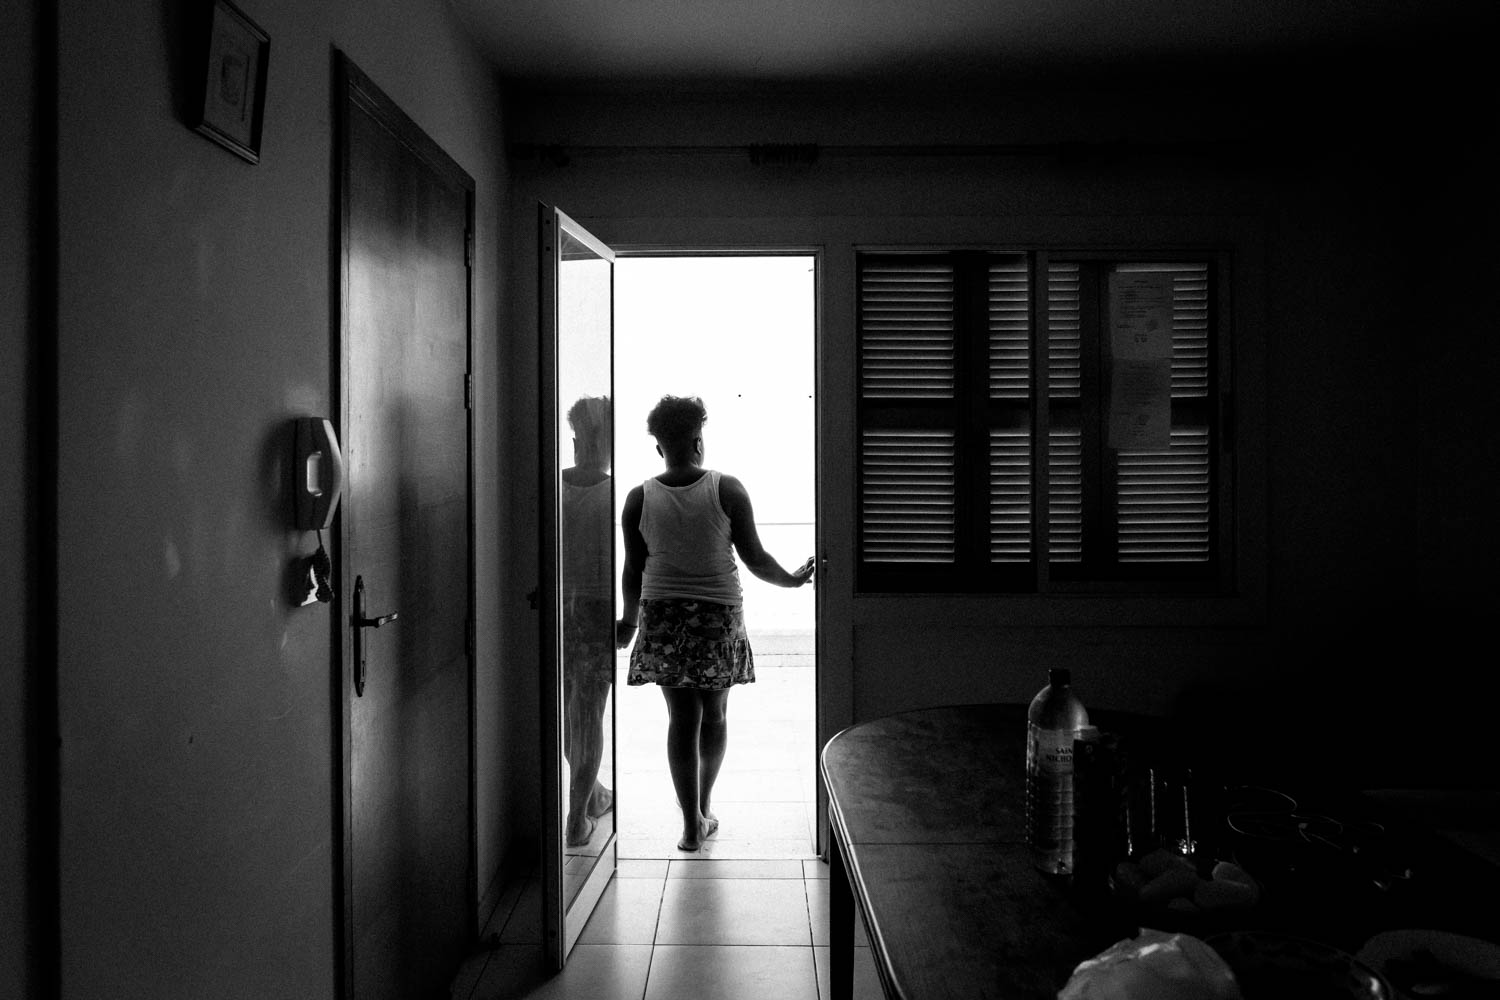 Cyprus, 2015. Laura (name changed), a young girl from Central Africa is looking out onto her balcony. The transitional housing for survivors of trafficking offers long term accommodation for women and men who need a place to recover and heal until they are able to integrate back into society.